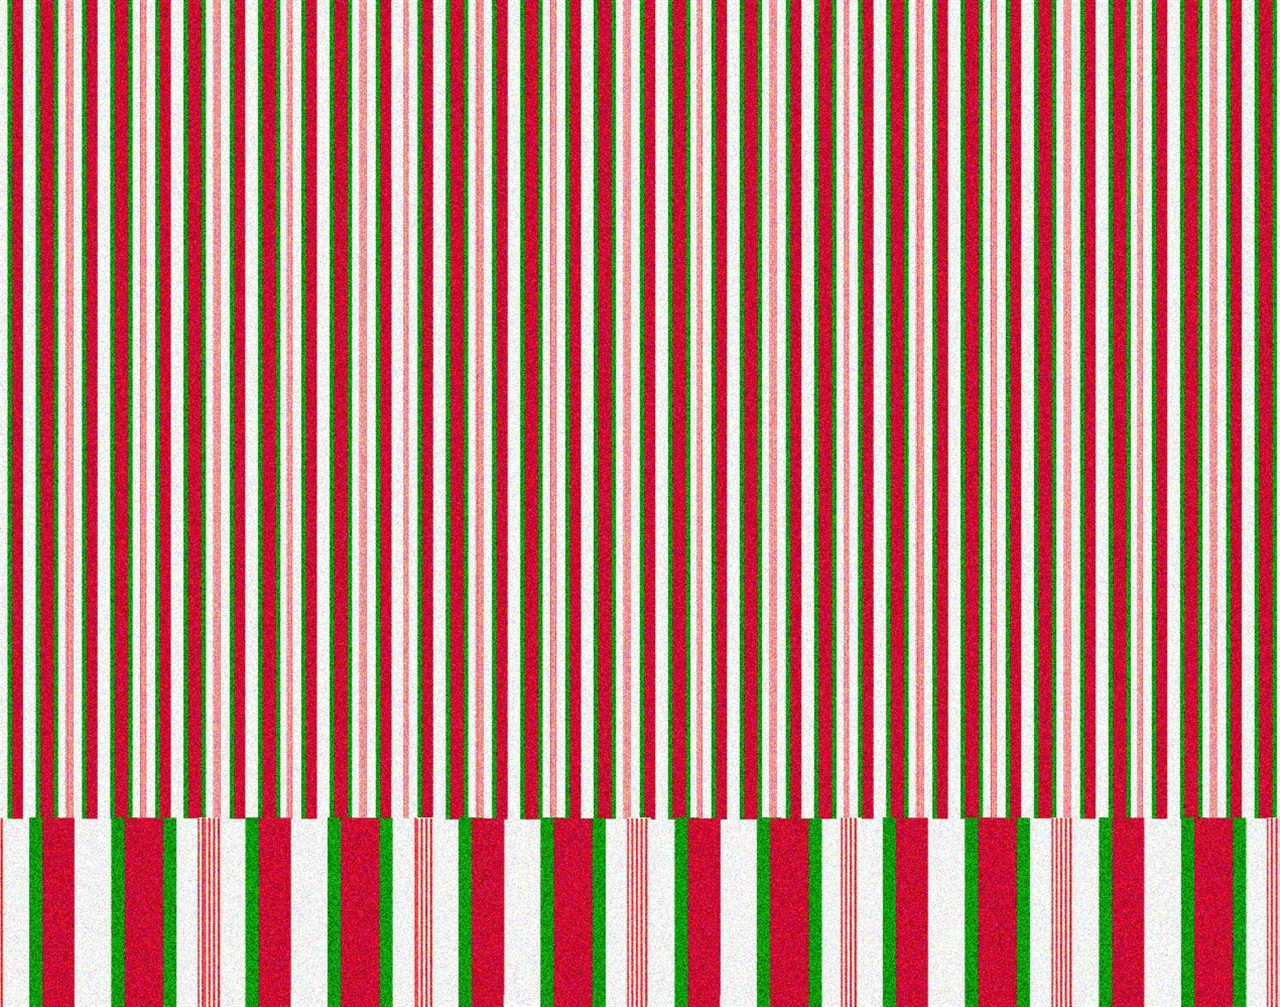 Showing Gallery For Candy Cane Stripes Wallpaper 1280x1007